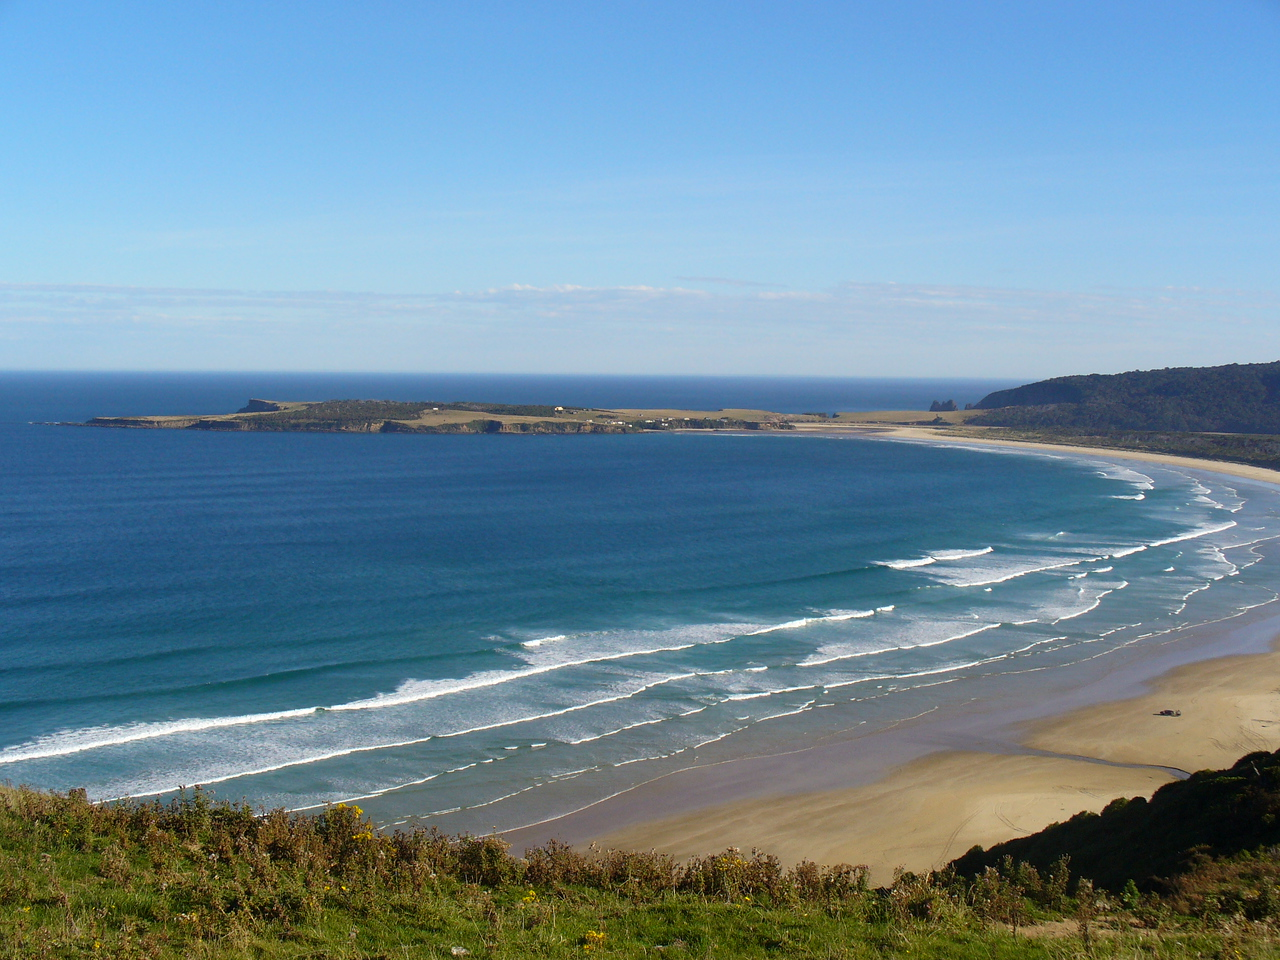 Who says NZ doesn't have good beaches? Catlins